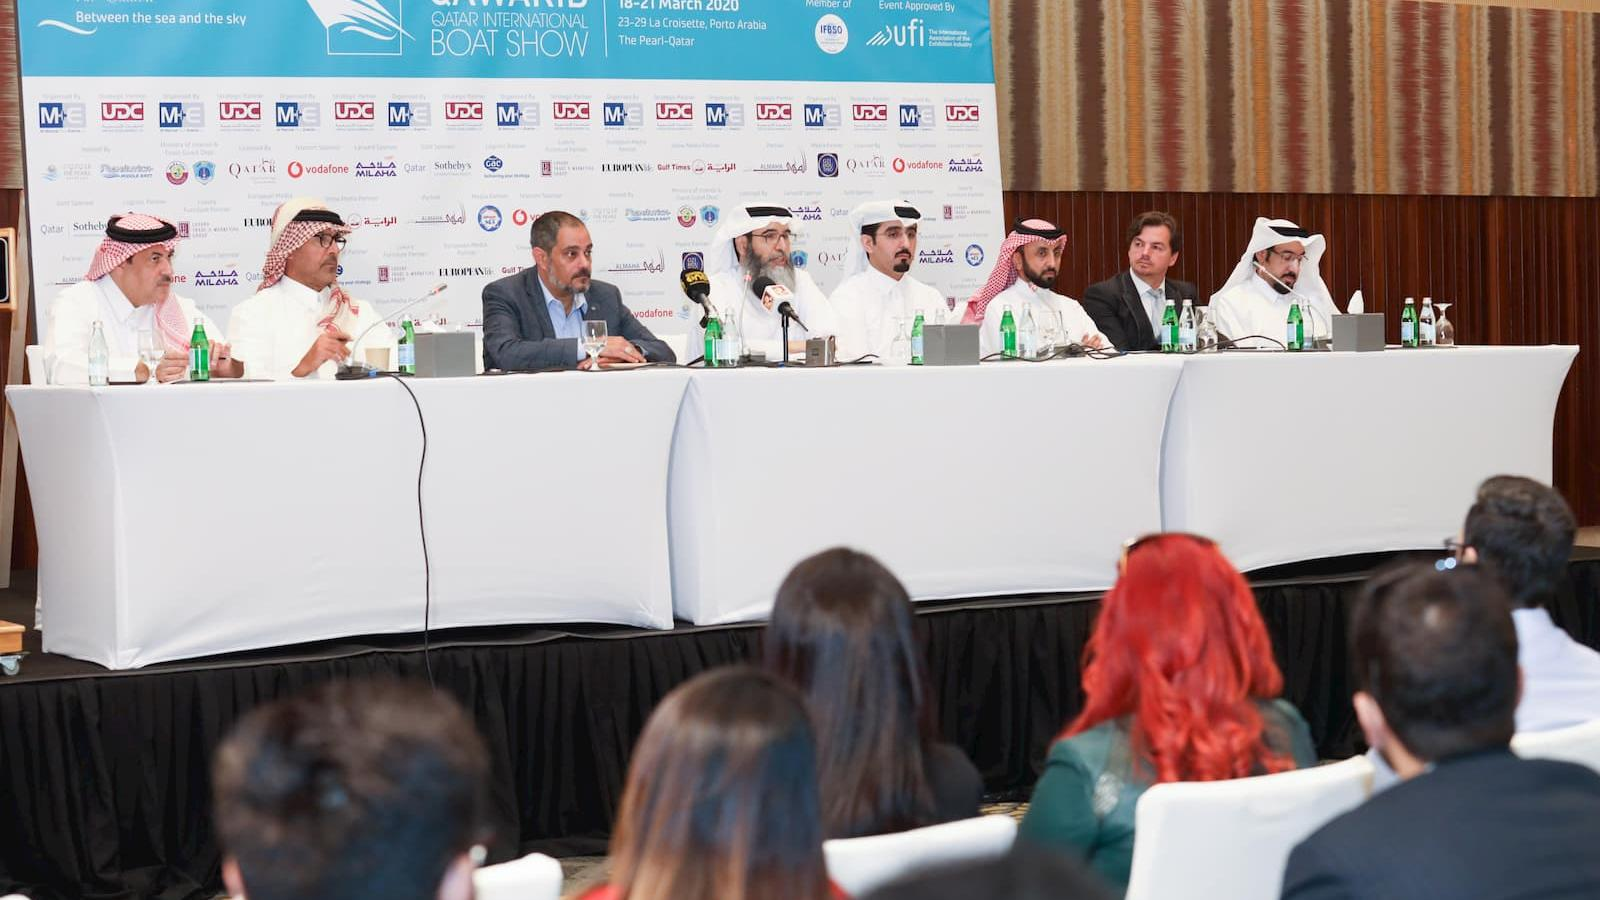 7th Qatar International Boat Show to kick off on March 18